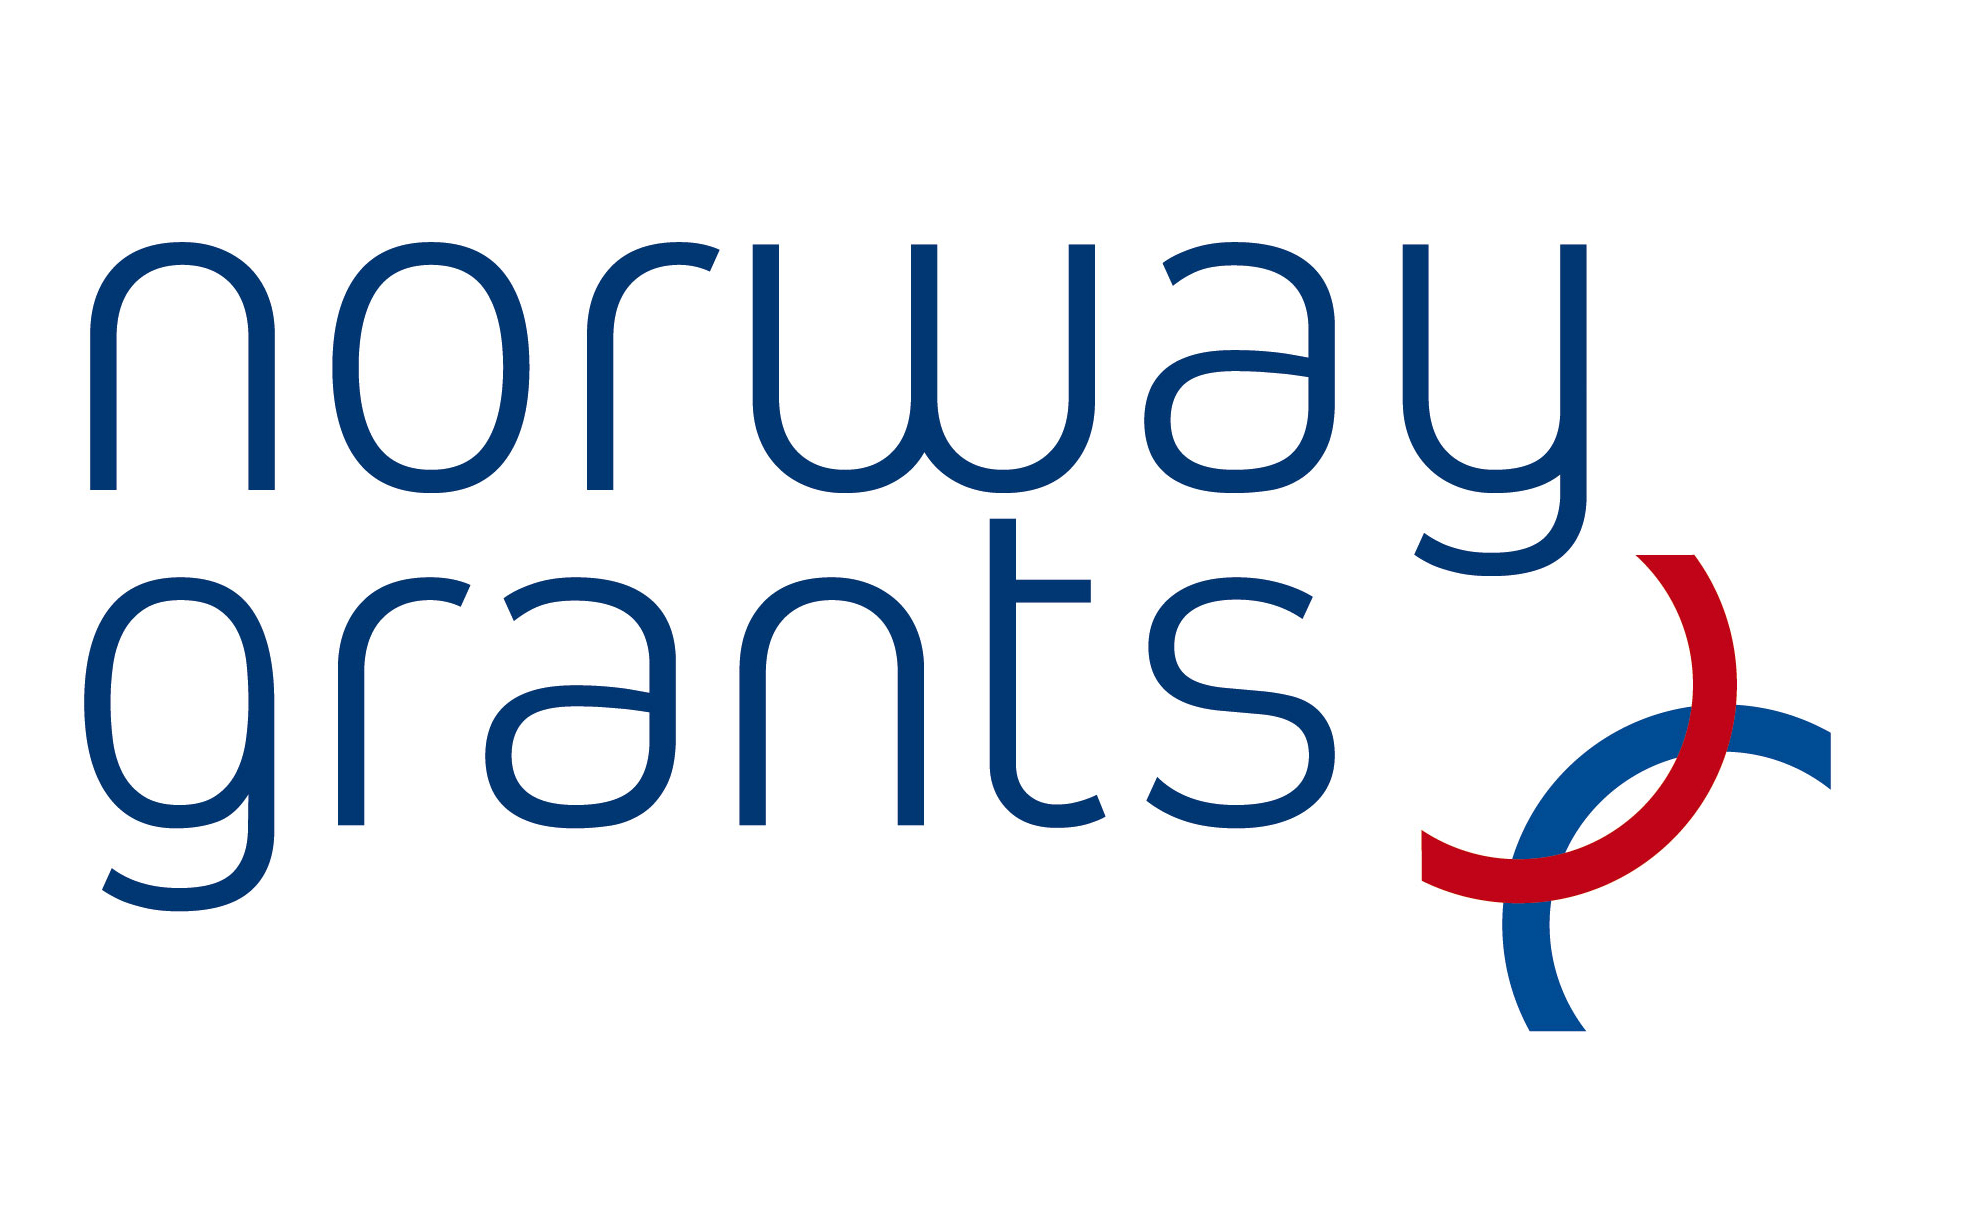 Norway Grants - Will be opened in new window